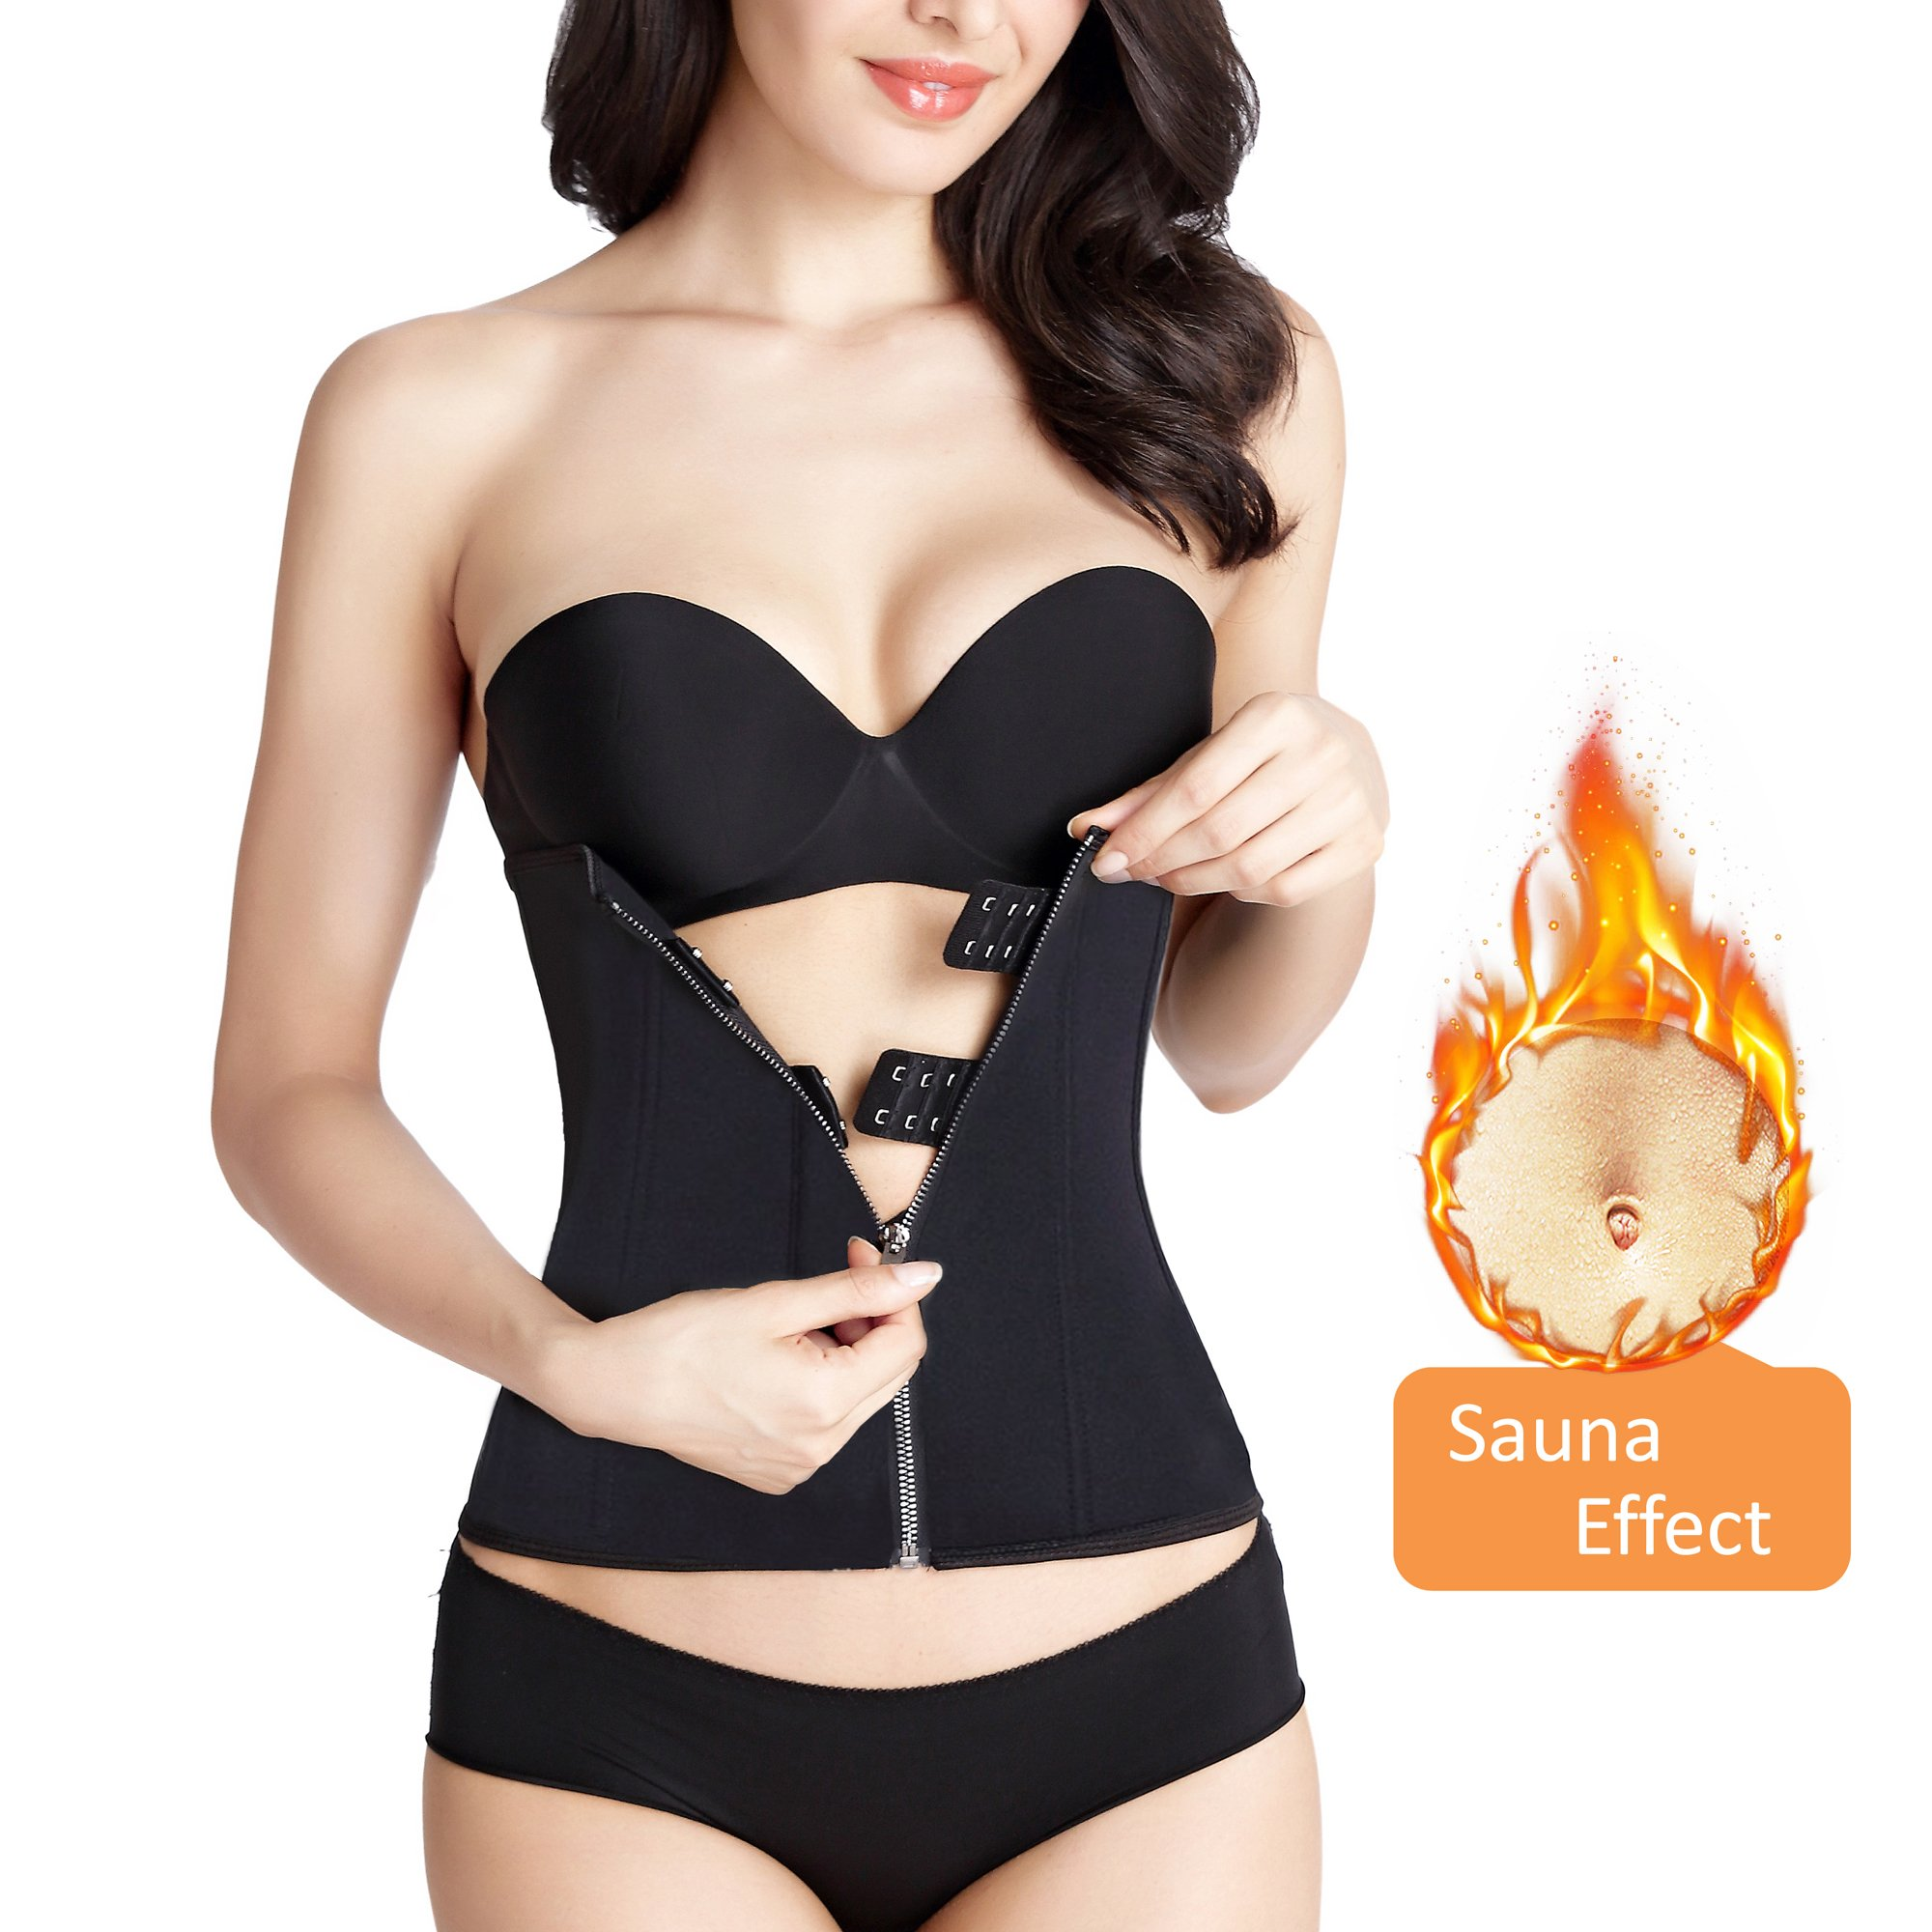 e06183bbc6 Zolkamery Women s Waist Trainer for Weight Loss Waist Corset Shapewear  Cincher Body Shaper for Hot Sweat